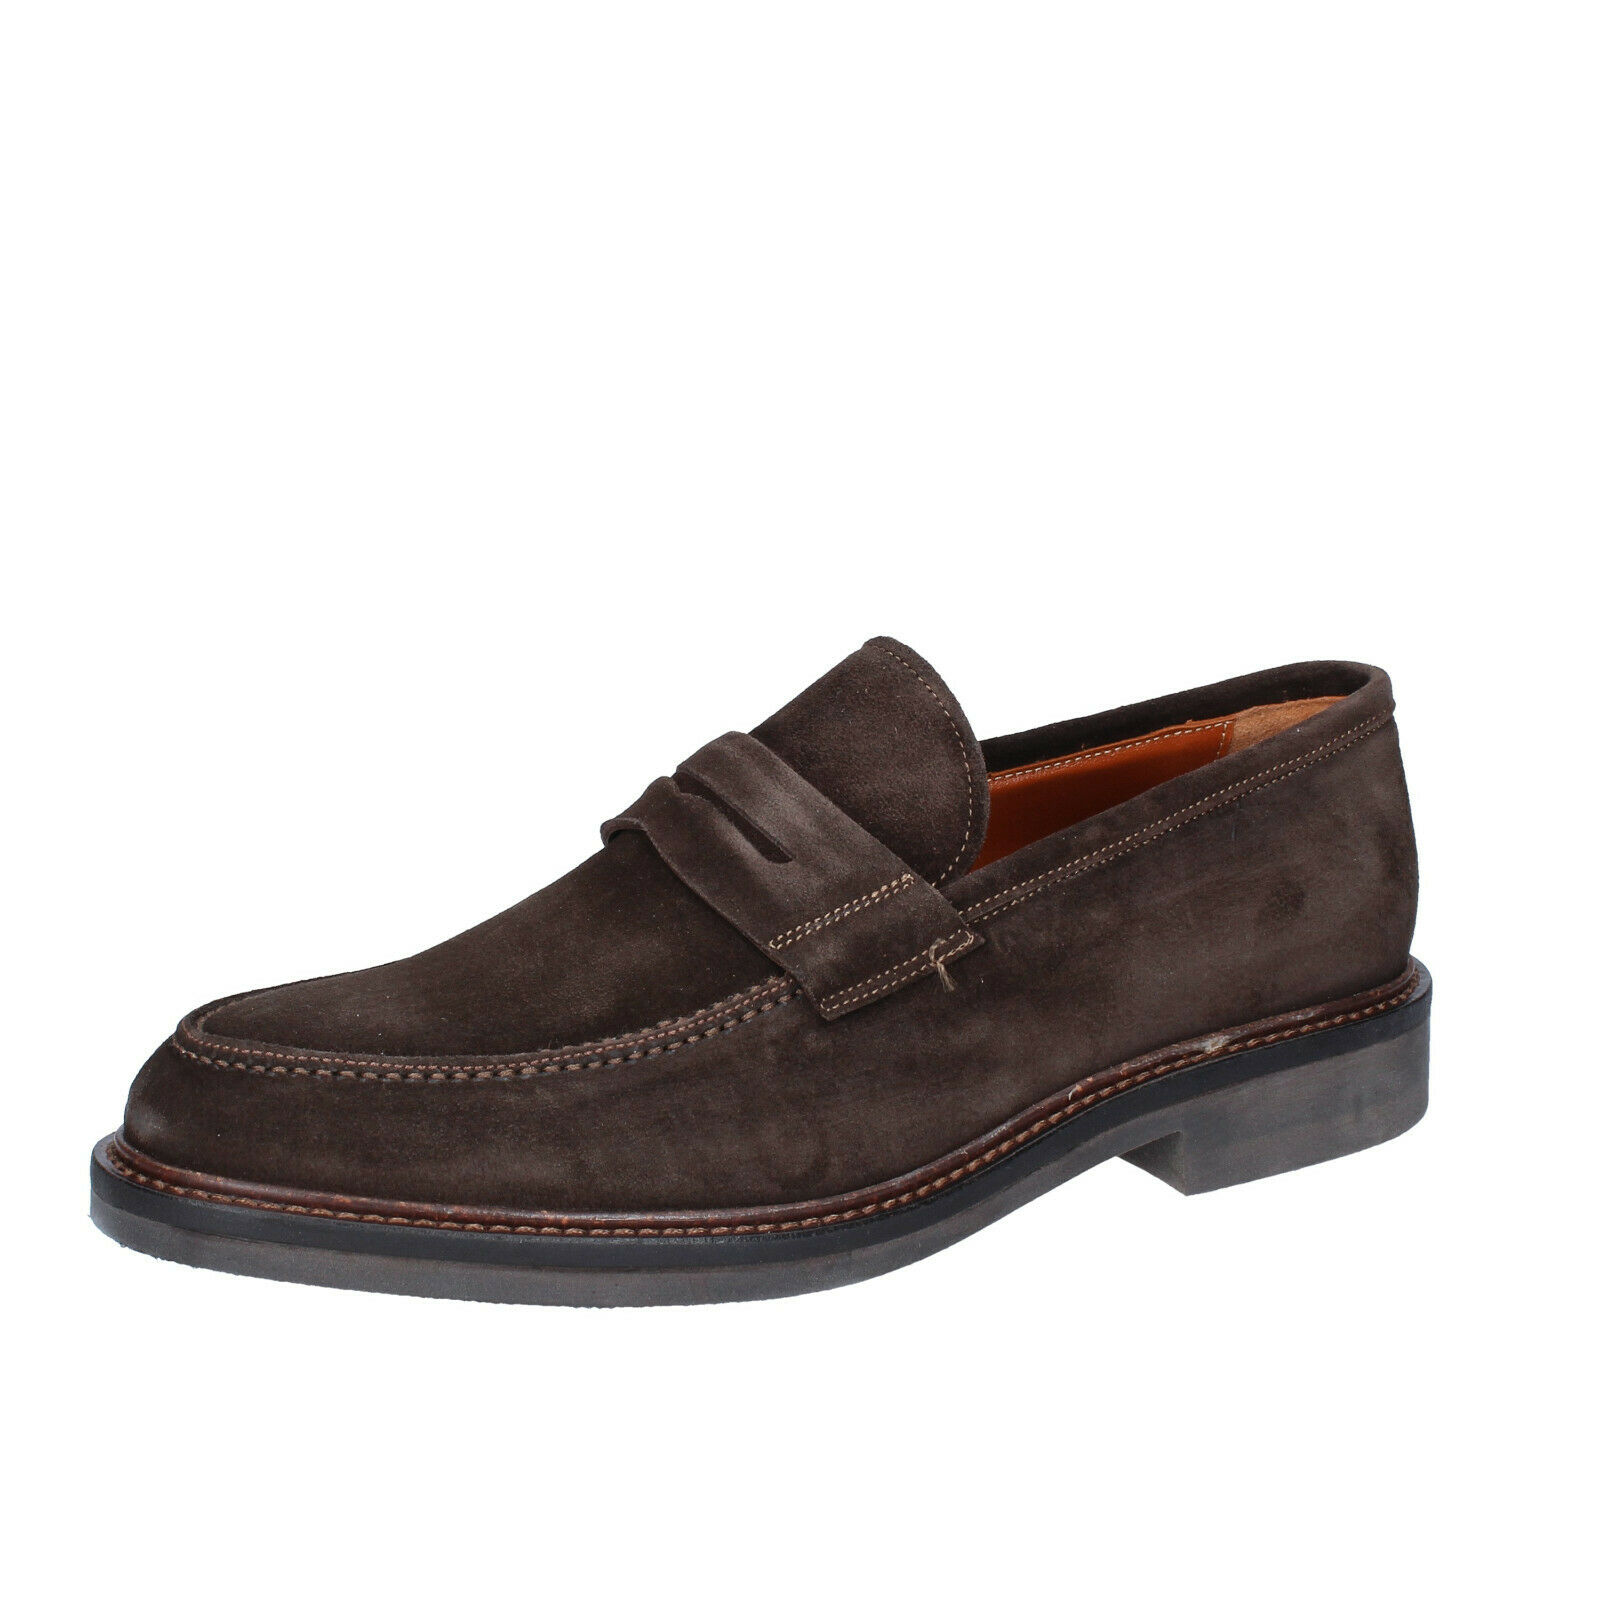 Mens shoes ZENITH 9 () loafers brown suede BS689-43